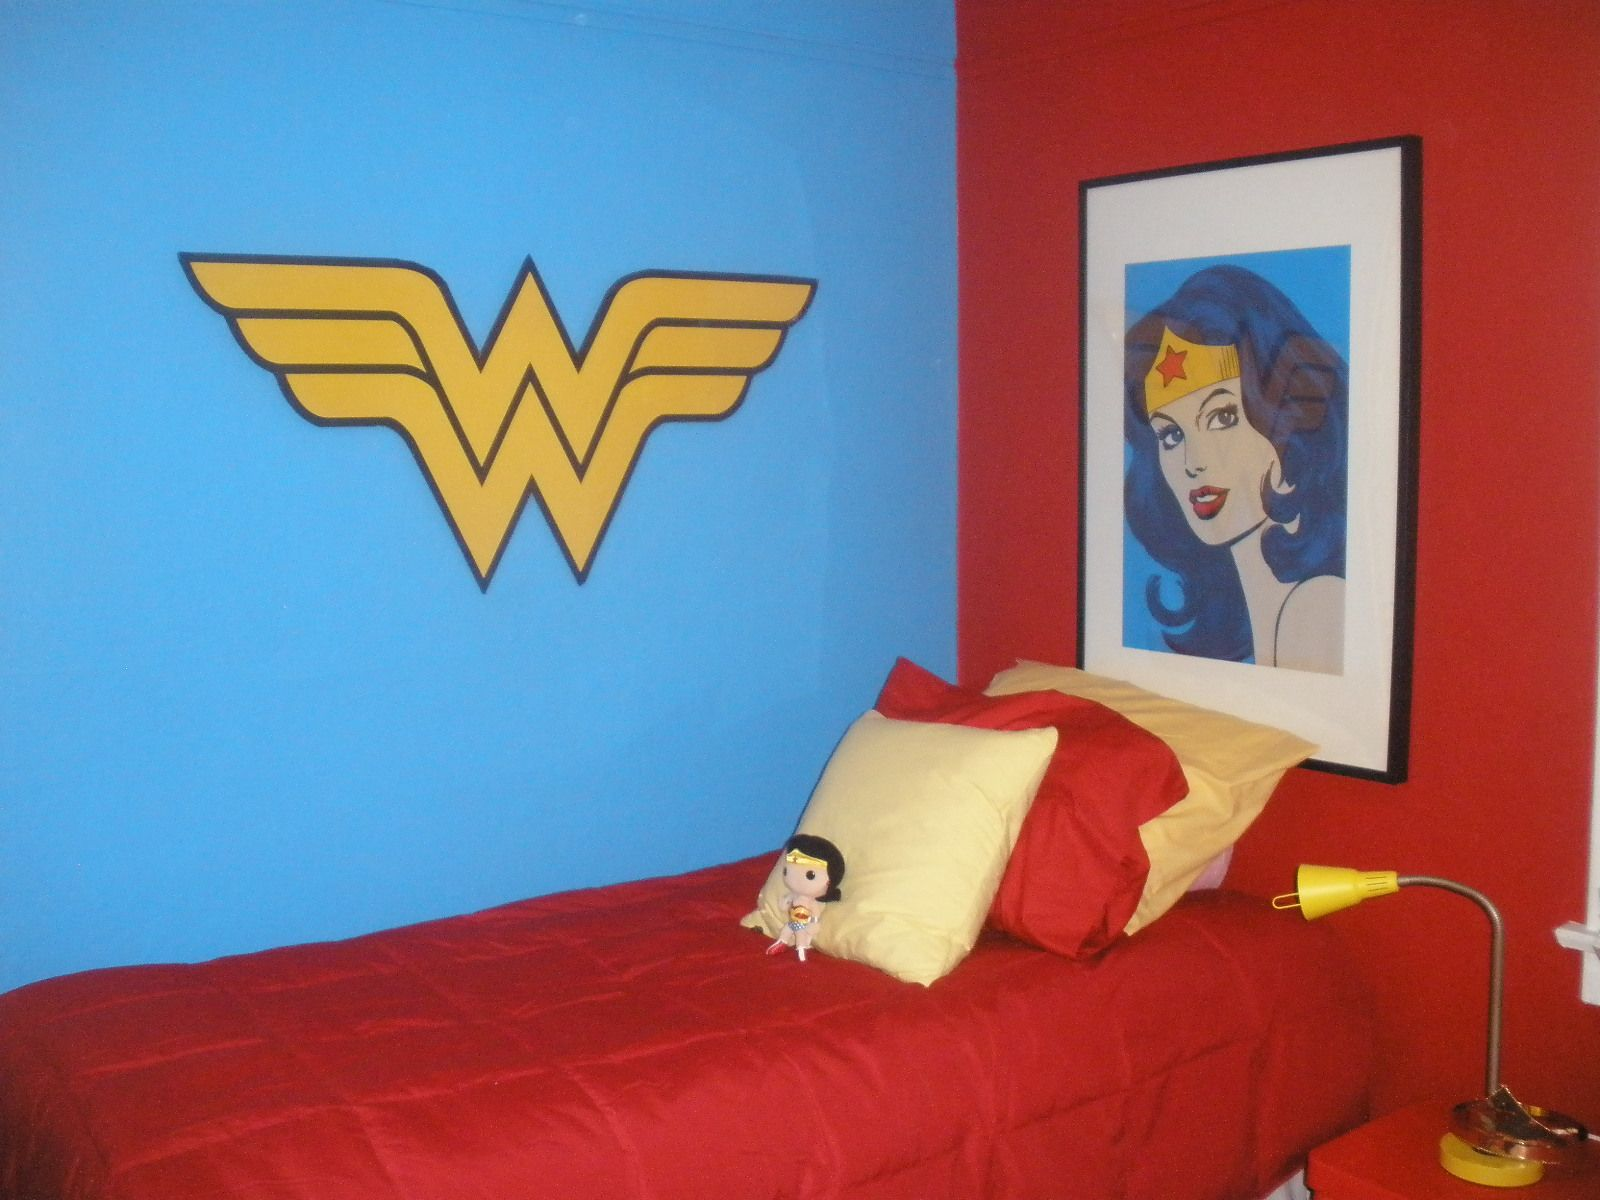 Superman Room Ideas You Know You 39d Love A Bed Room Like This Don 39t You